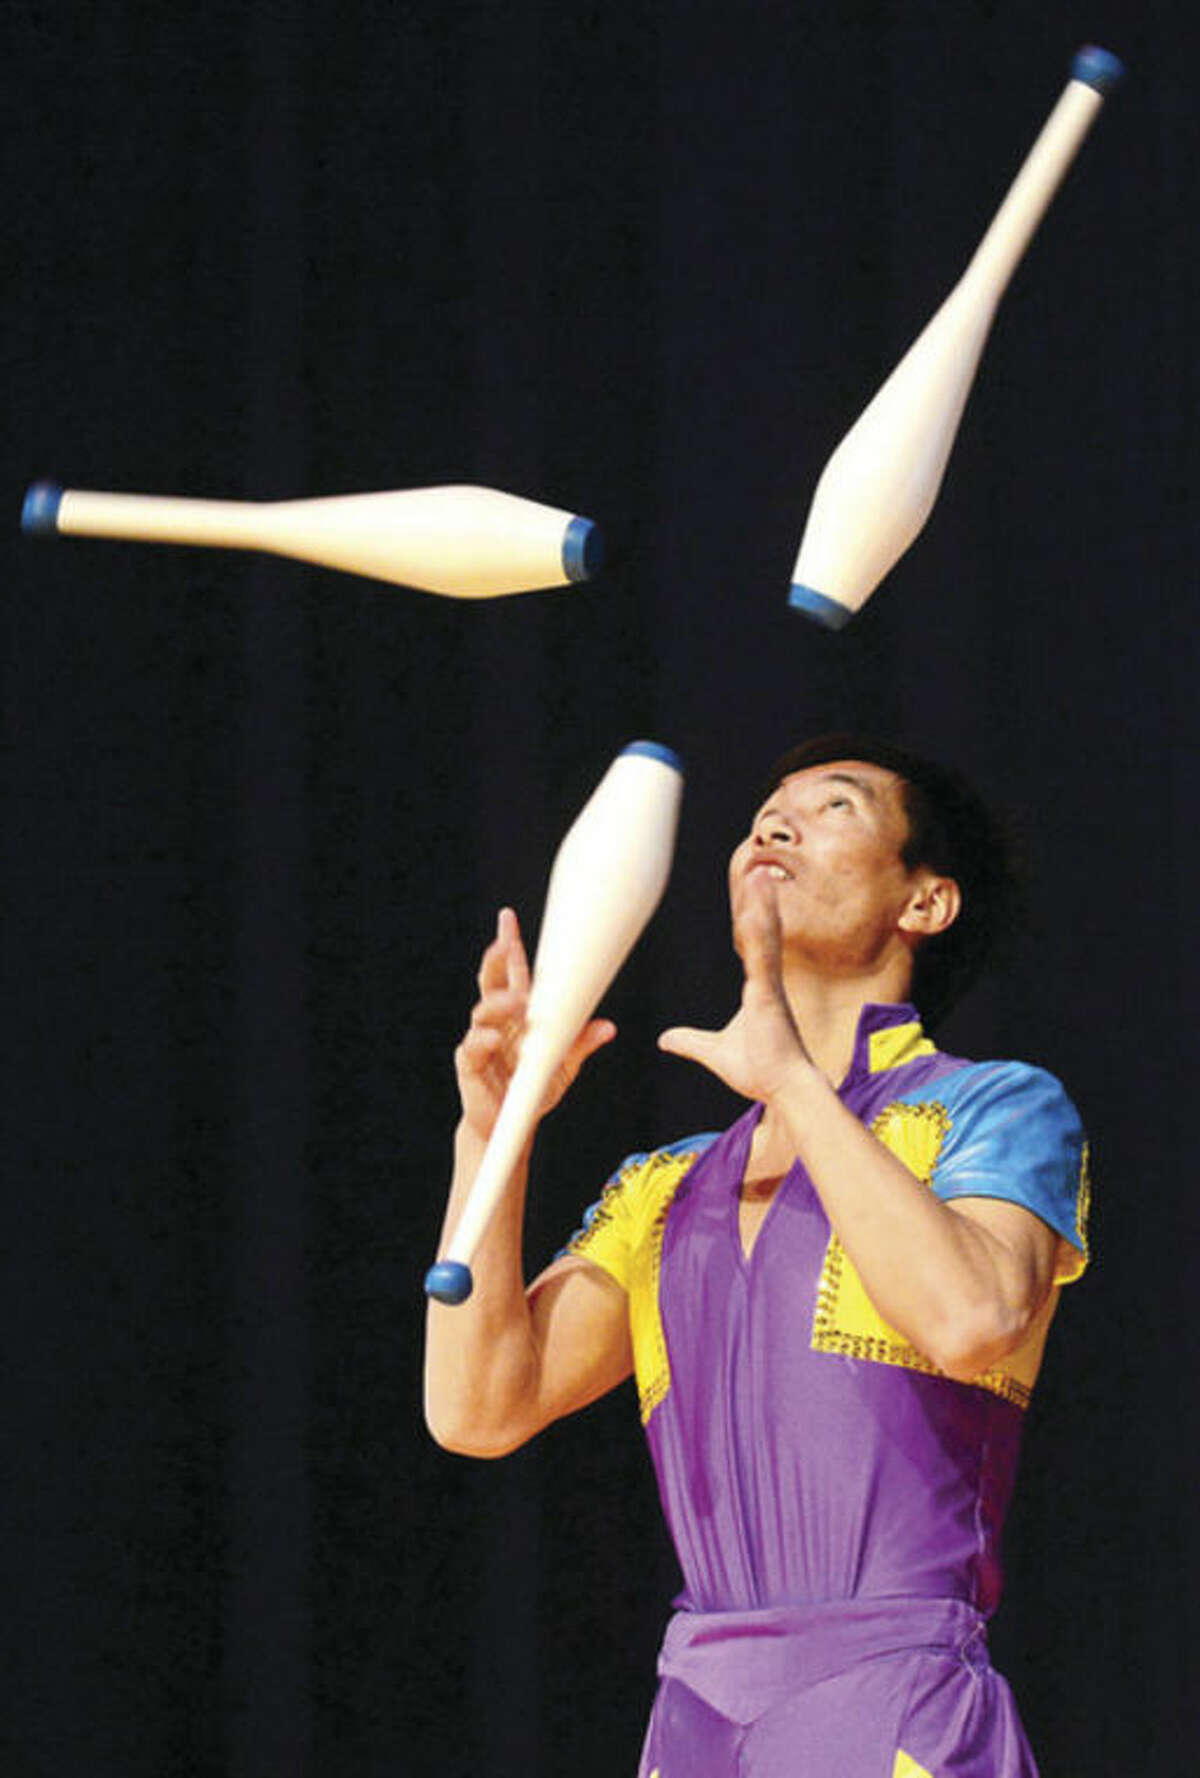 All Saints Catholic School hosted the Chinese Acrobat troupe from Bejing as part of the cultural enrichment program and to help kick off National Catholic Schools week Thursday morning. Hour photo / Erik Trautmann